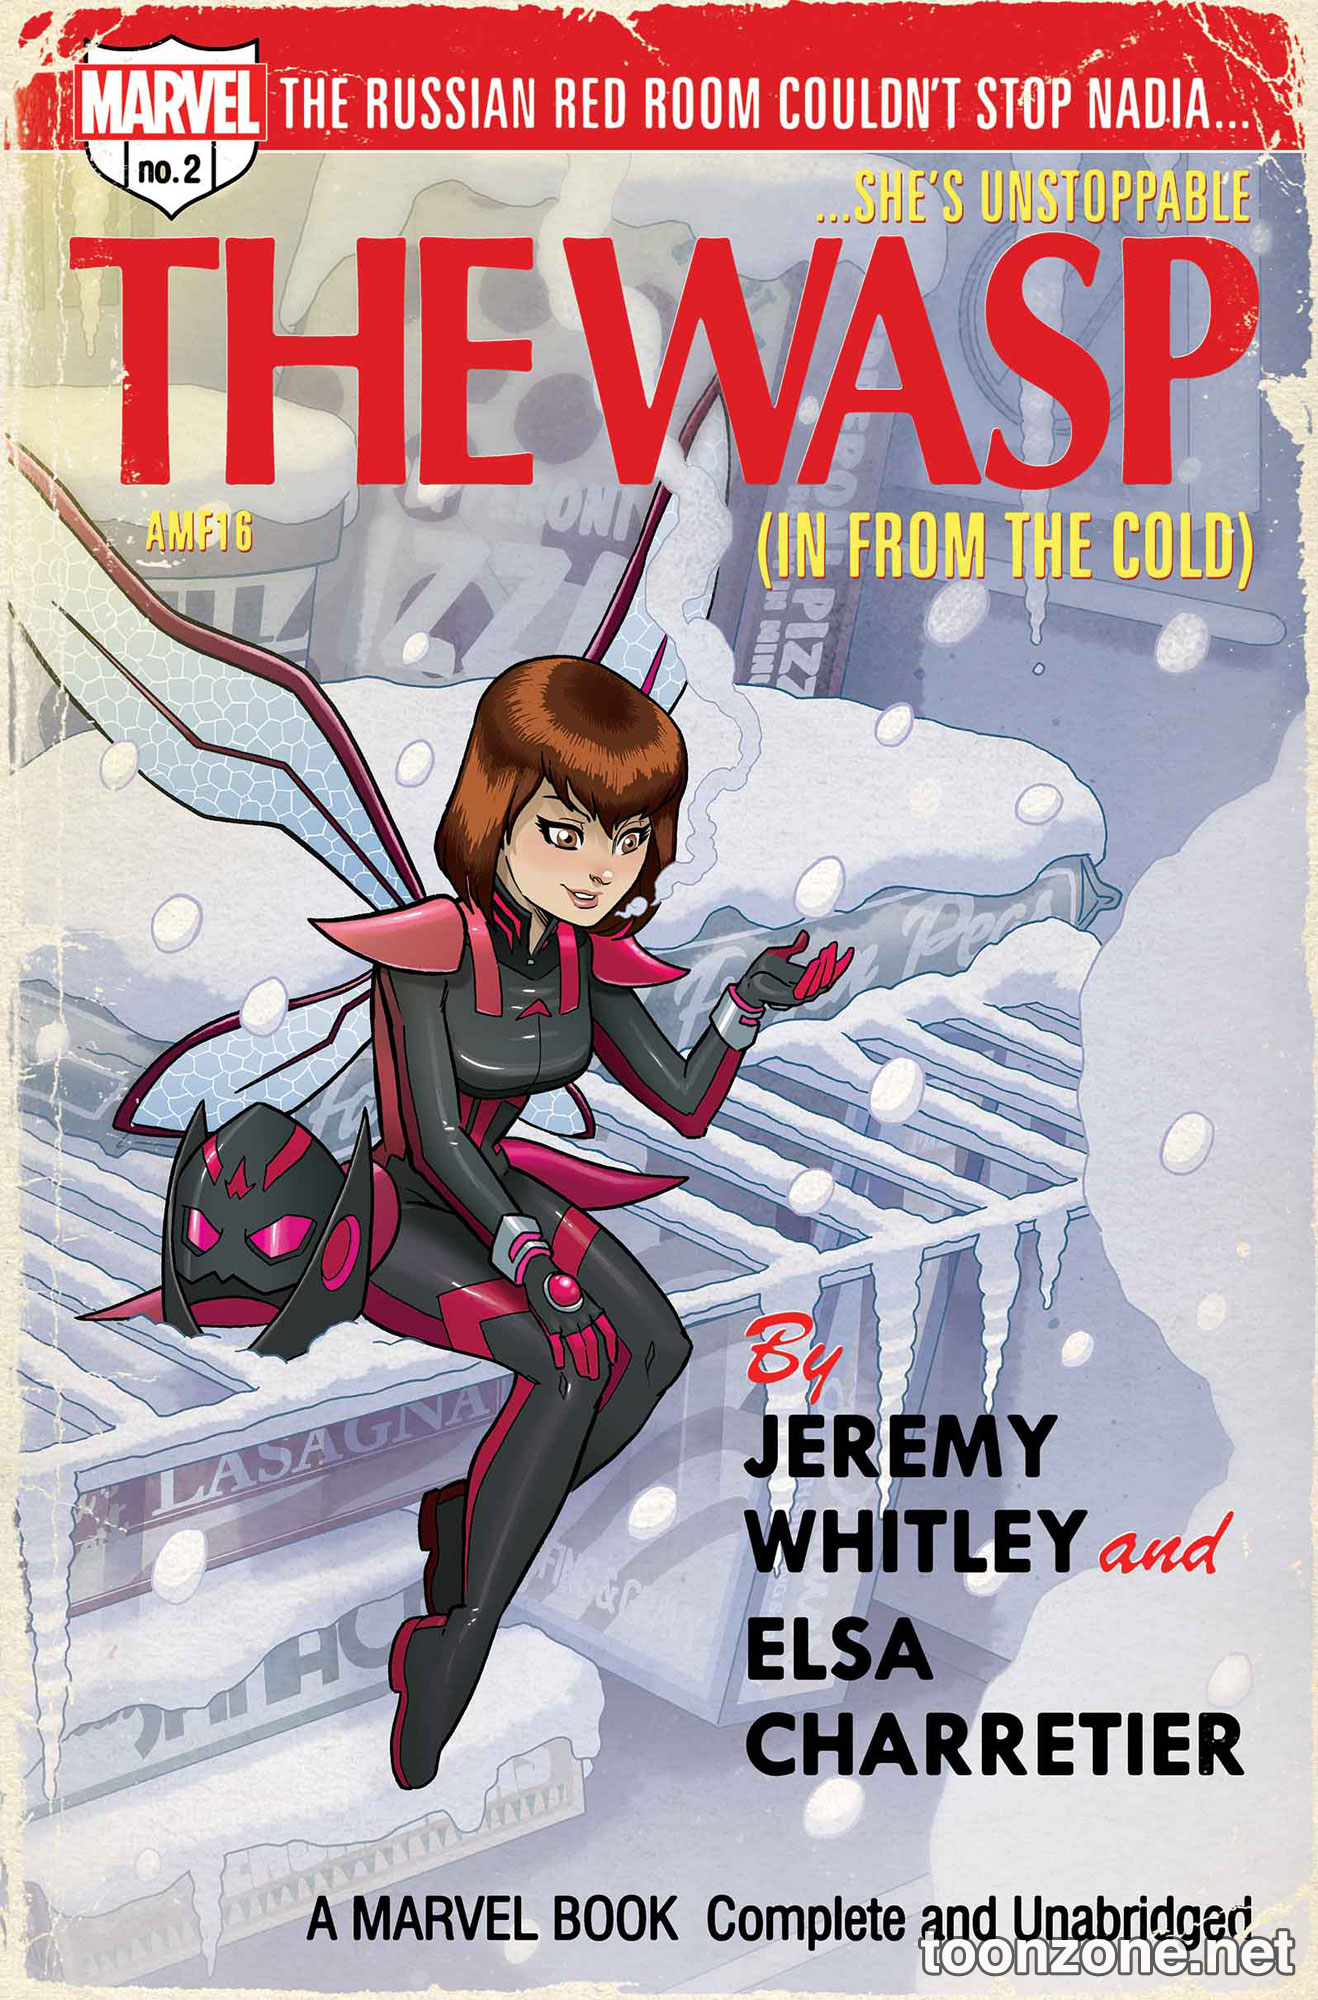 THE UNSTOPPABLE WASP #2 (Variant Cover)